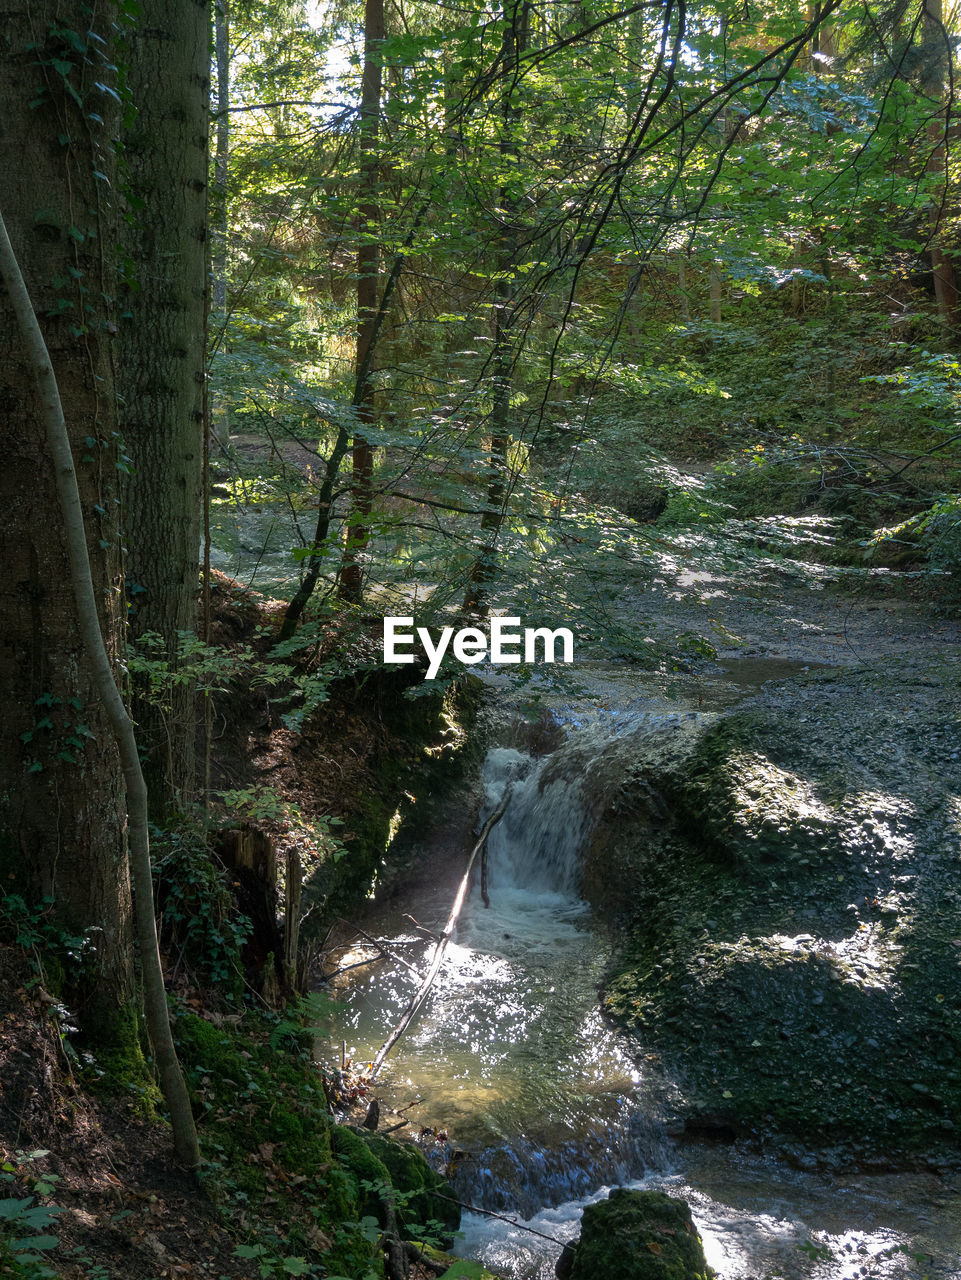 tree, forest, plant, land, water, beauty in nature, nature, growth, no people, tranquility, day, scenics - nature, motion, flowing water, non-urban scene, tranquil scene, environment, flowing, woodland, outdoors, stream - flowing water, rainforest